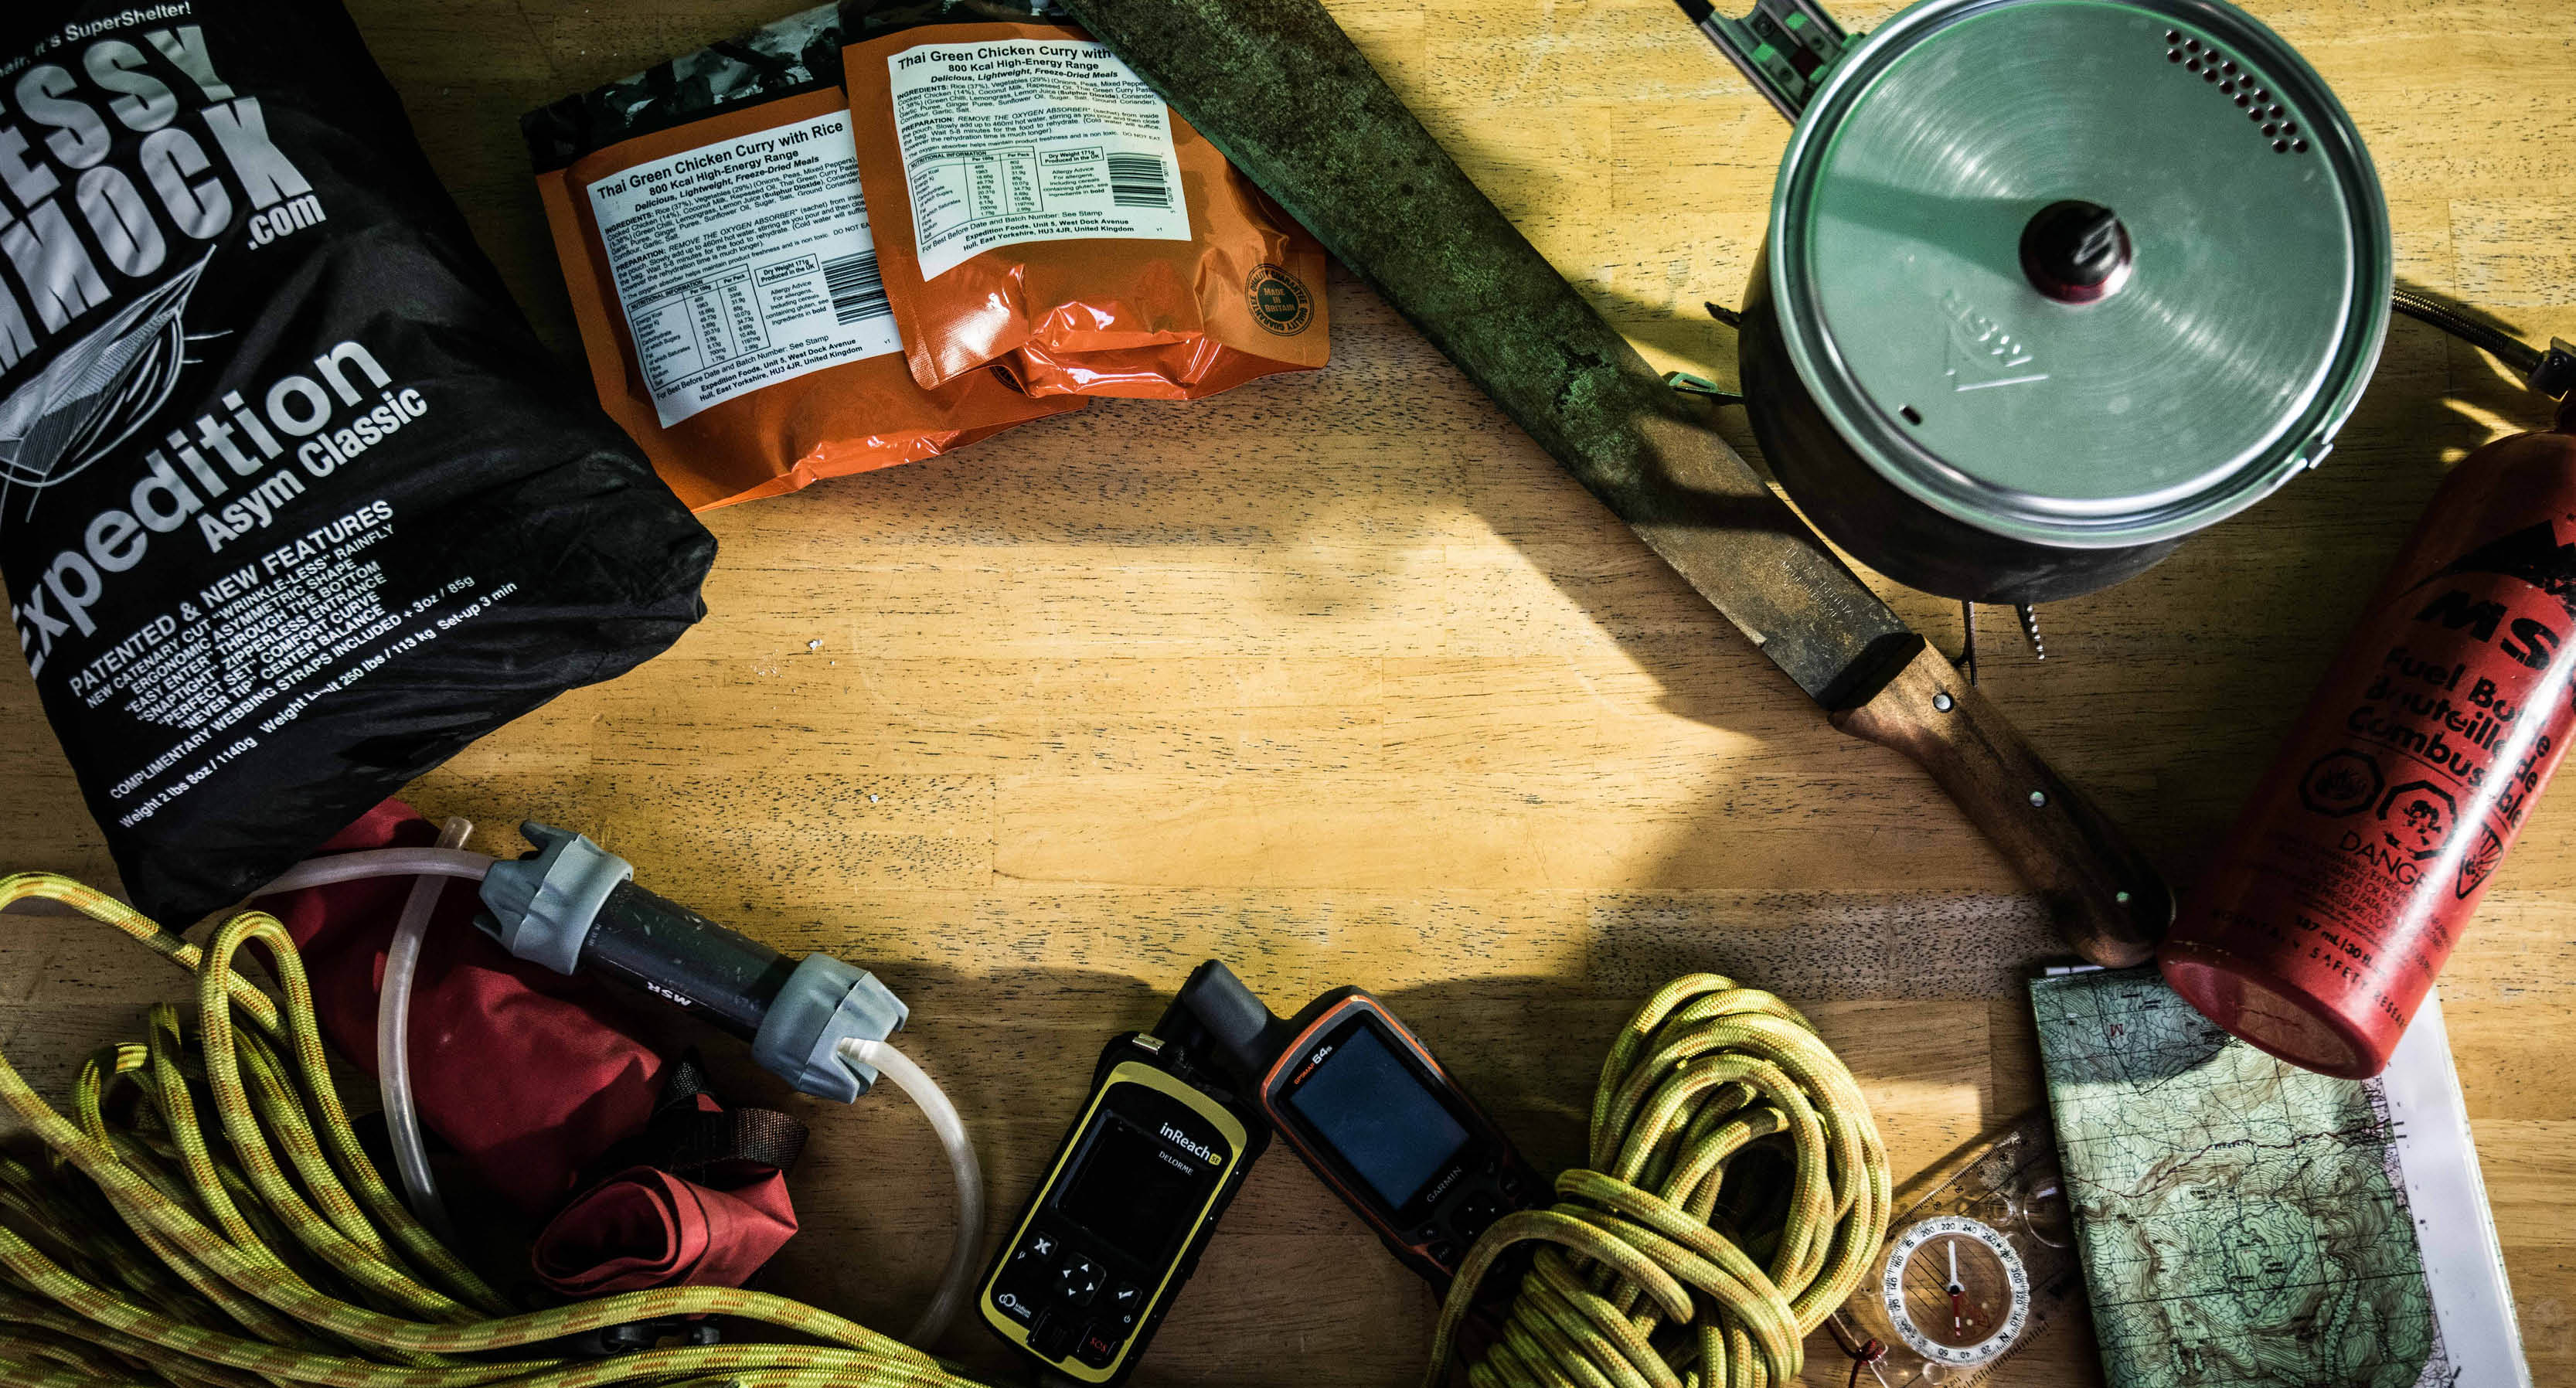 Handbook, map, rope, kit, fuel bottle, expedition food, comms